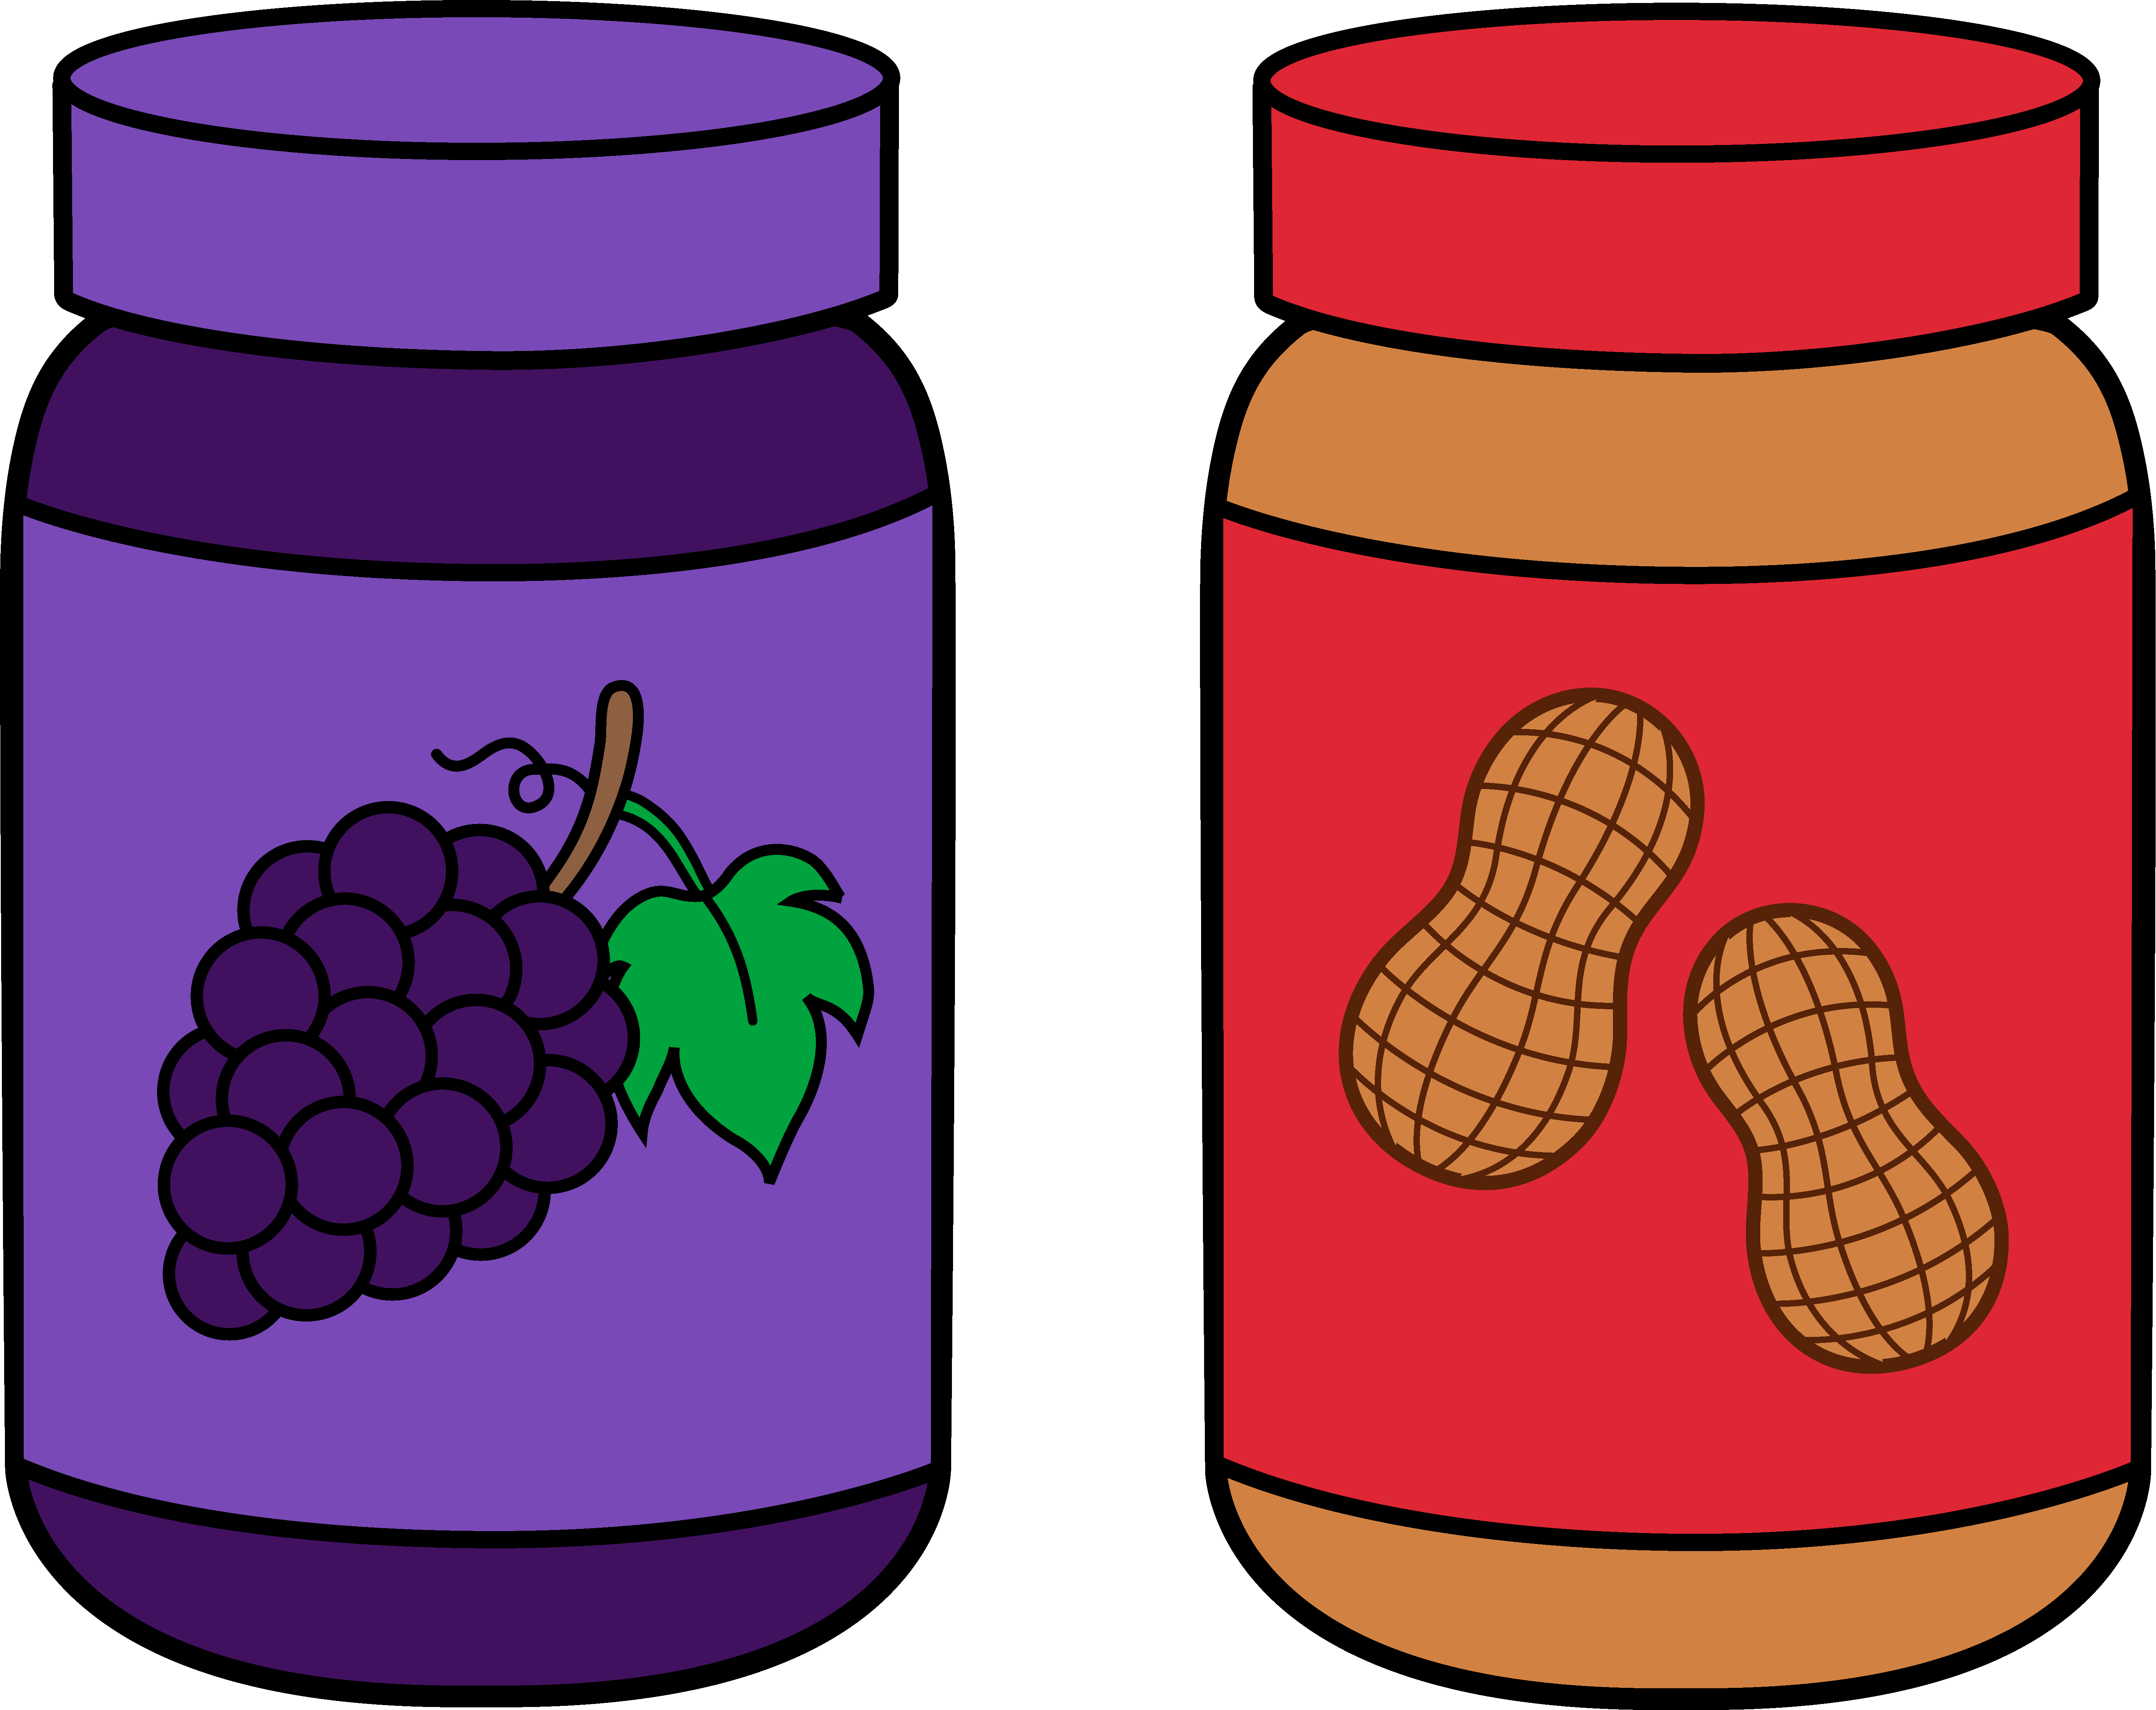 graphic freeuse Peanut Butter Clipart grape jelly